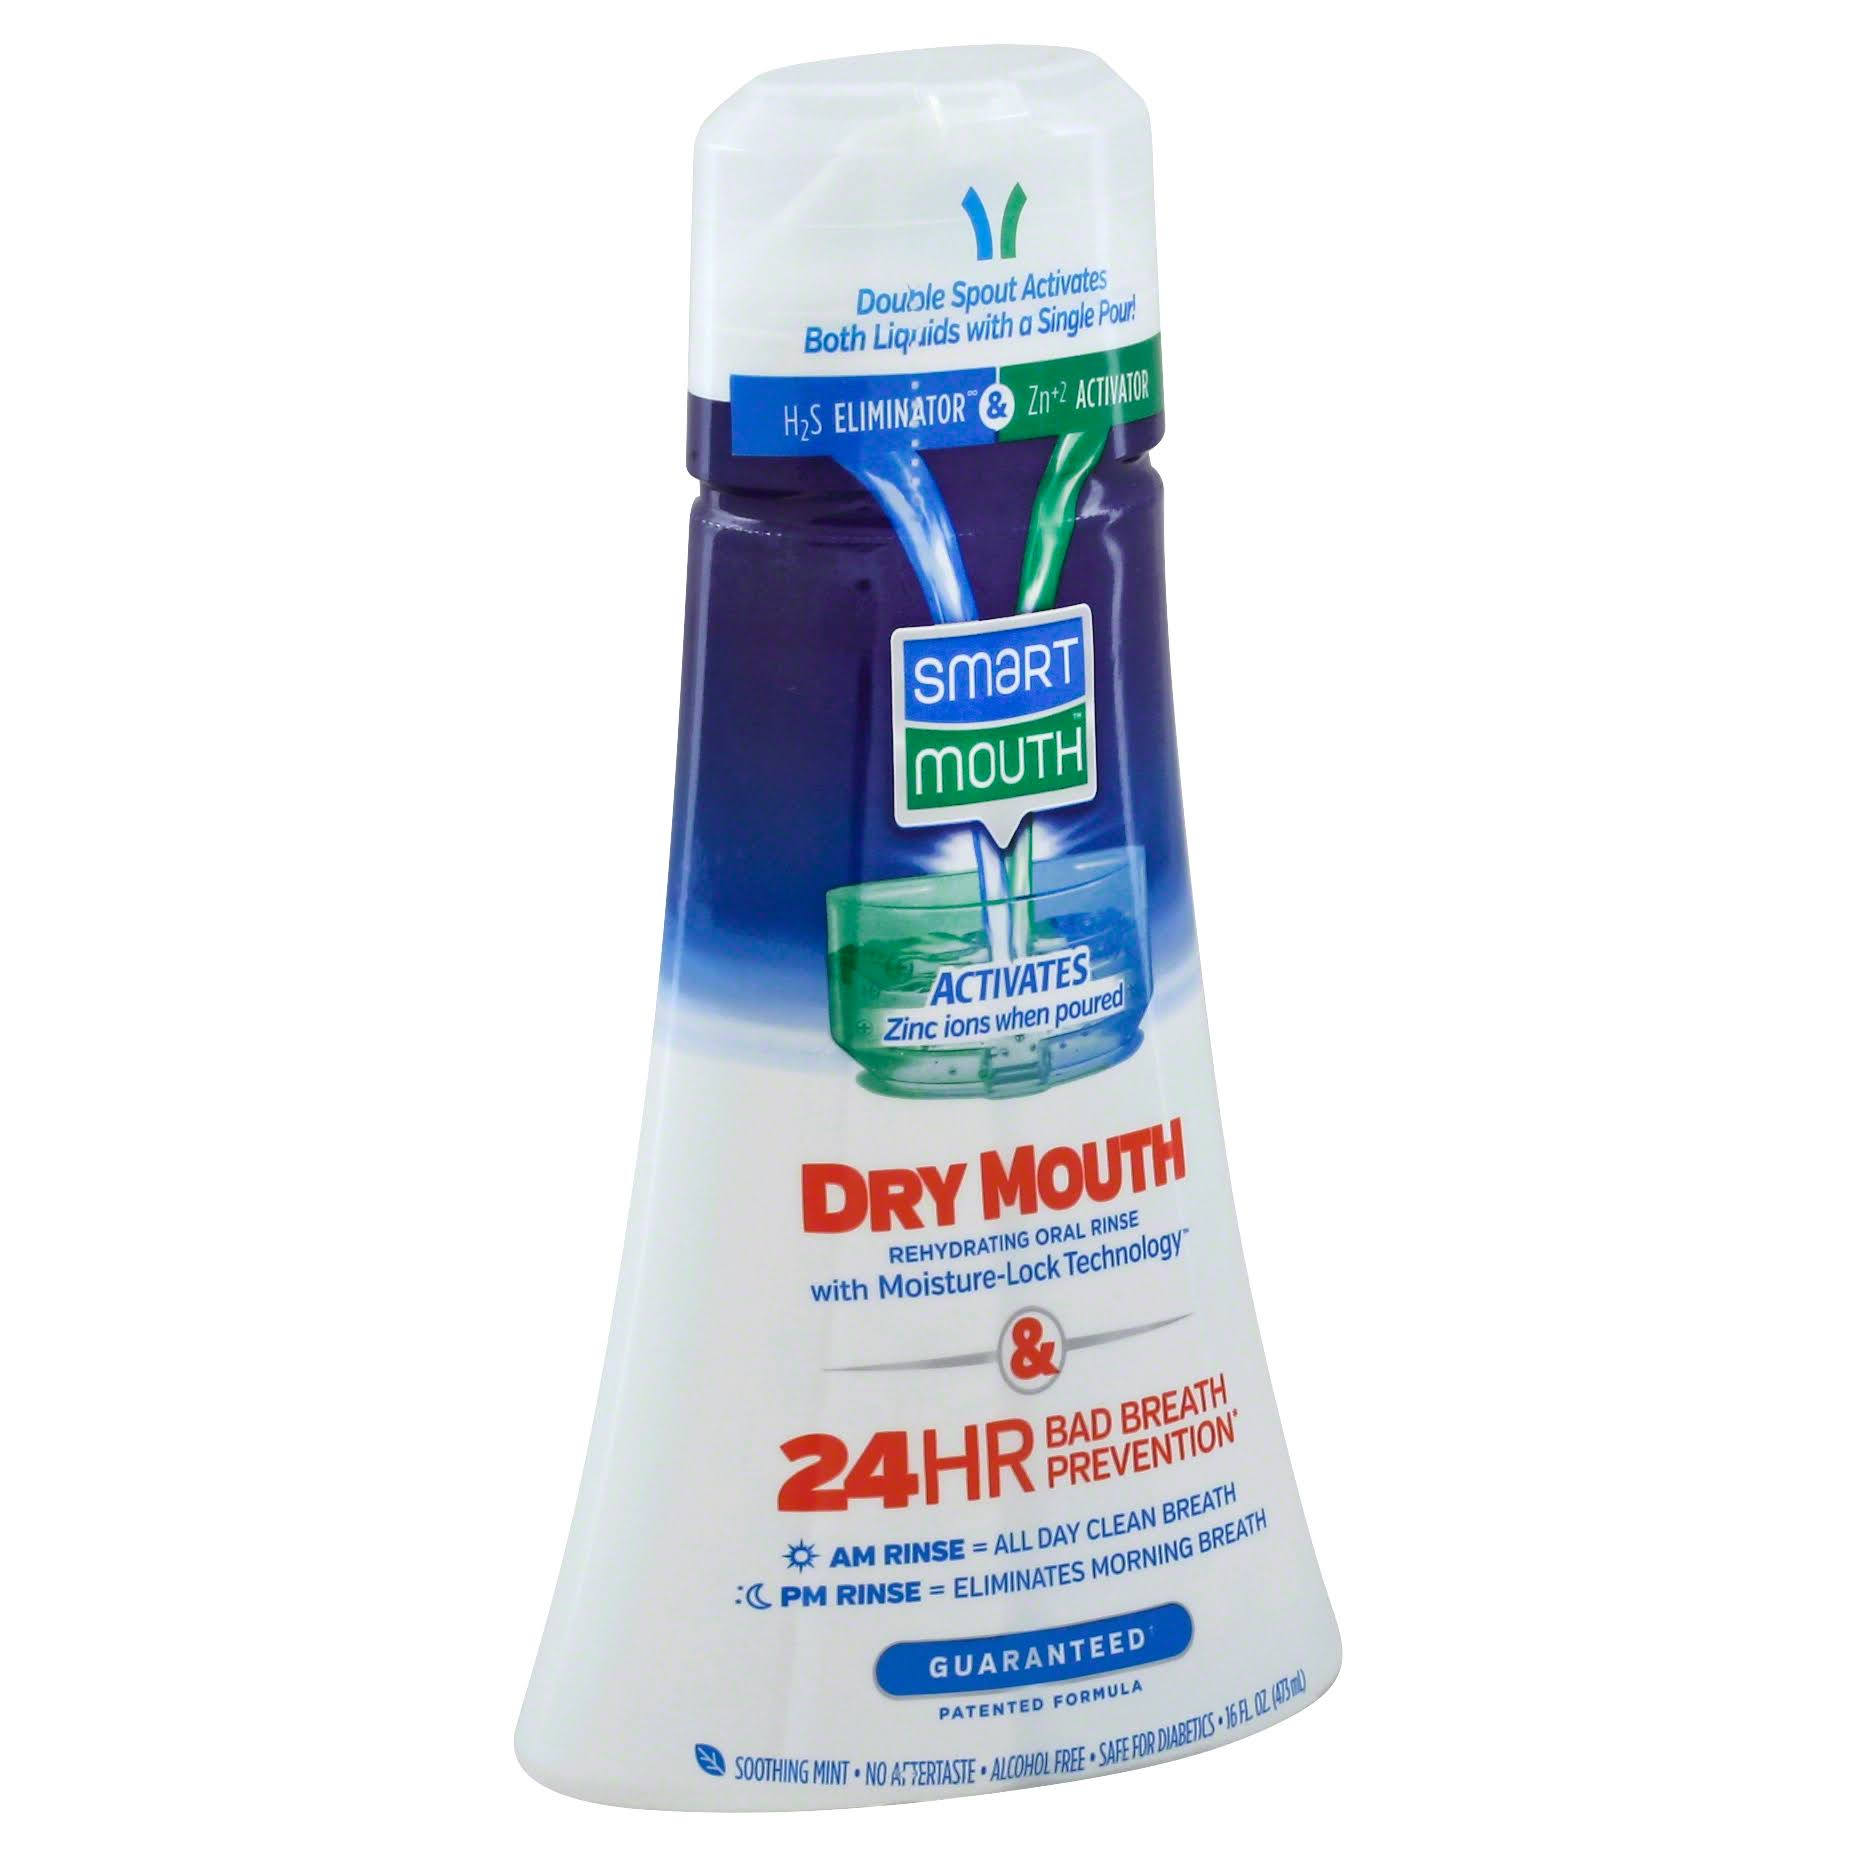 SmartMouth Dry Mouth Clean Activated Mouthwash - 16oz